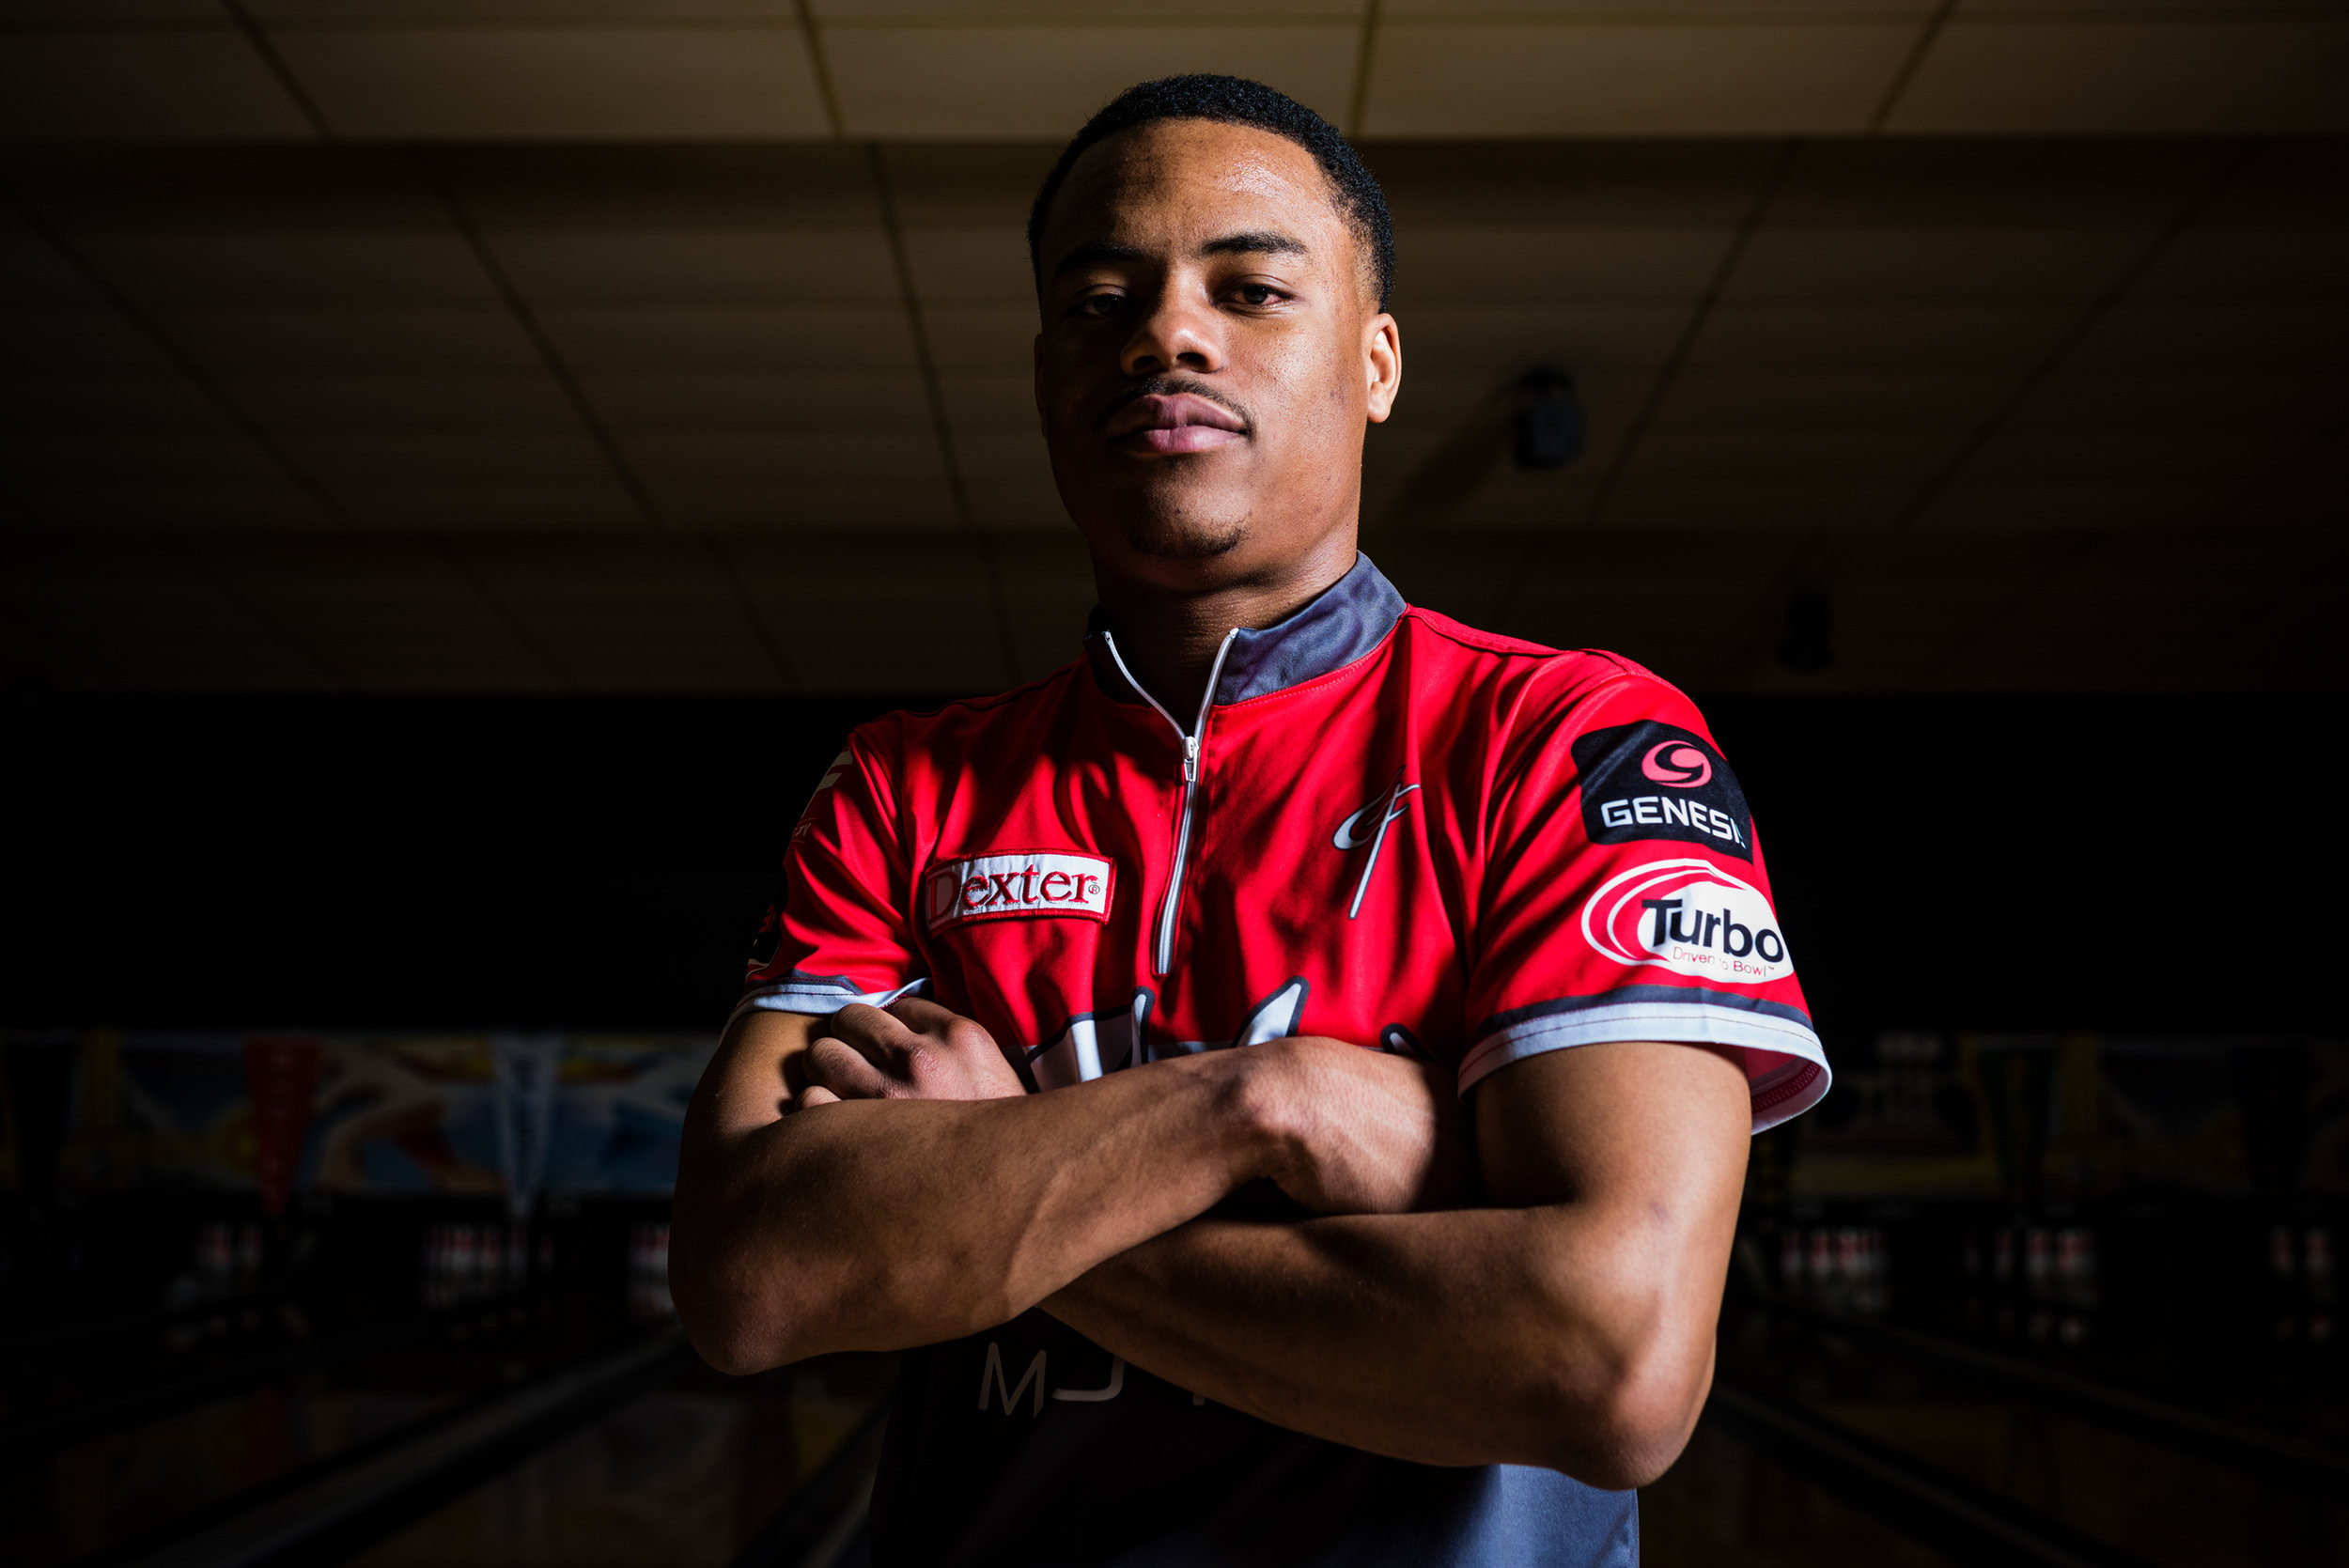 Gary Faulkner Jr. at AMF Riviera Lanes in Fairlawn, Ohio during the PBA Tournament of Champions on February 7. Dustin Franz for The Undefeated